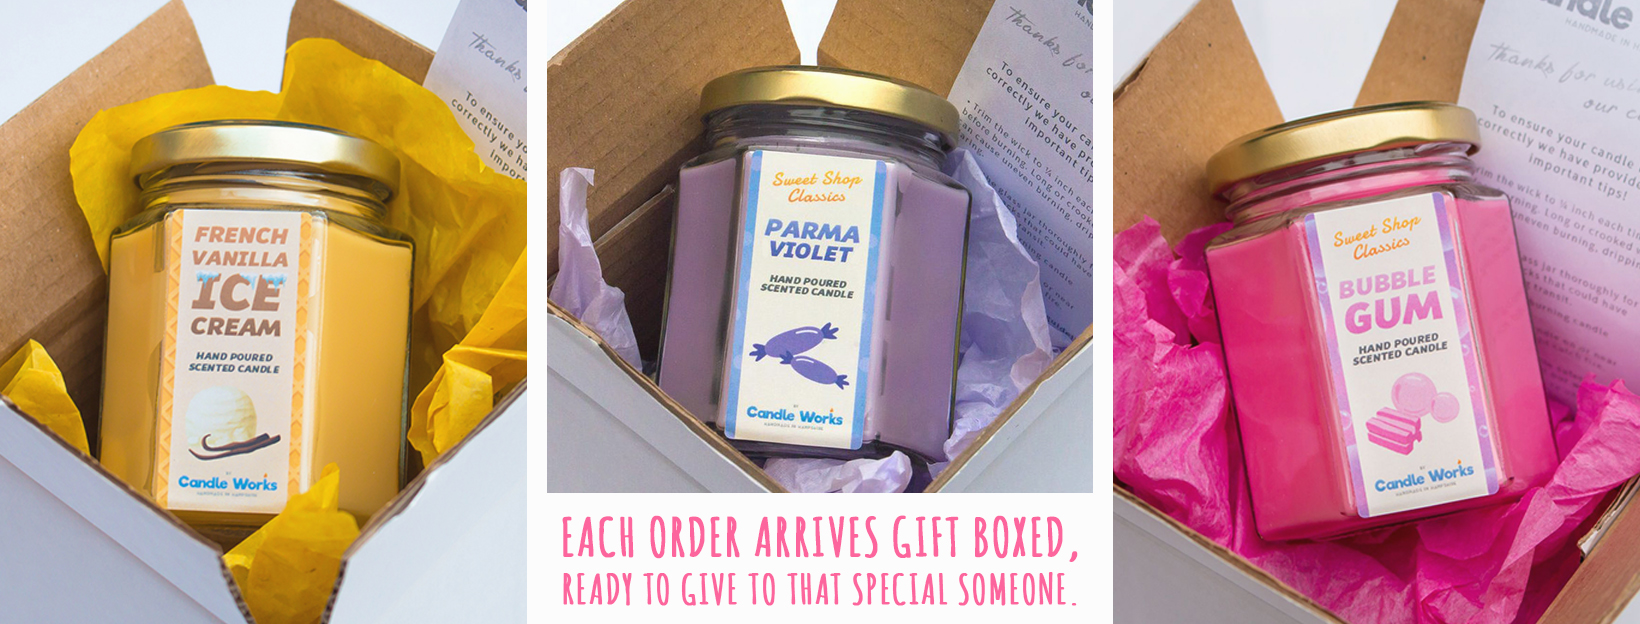 gift-boxed-candles.jpg